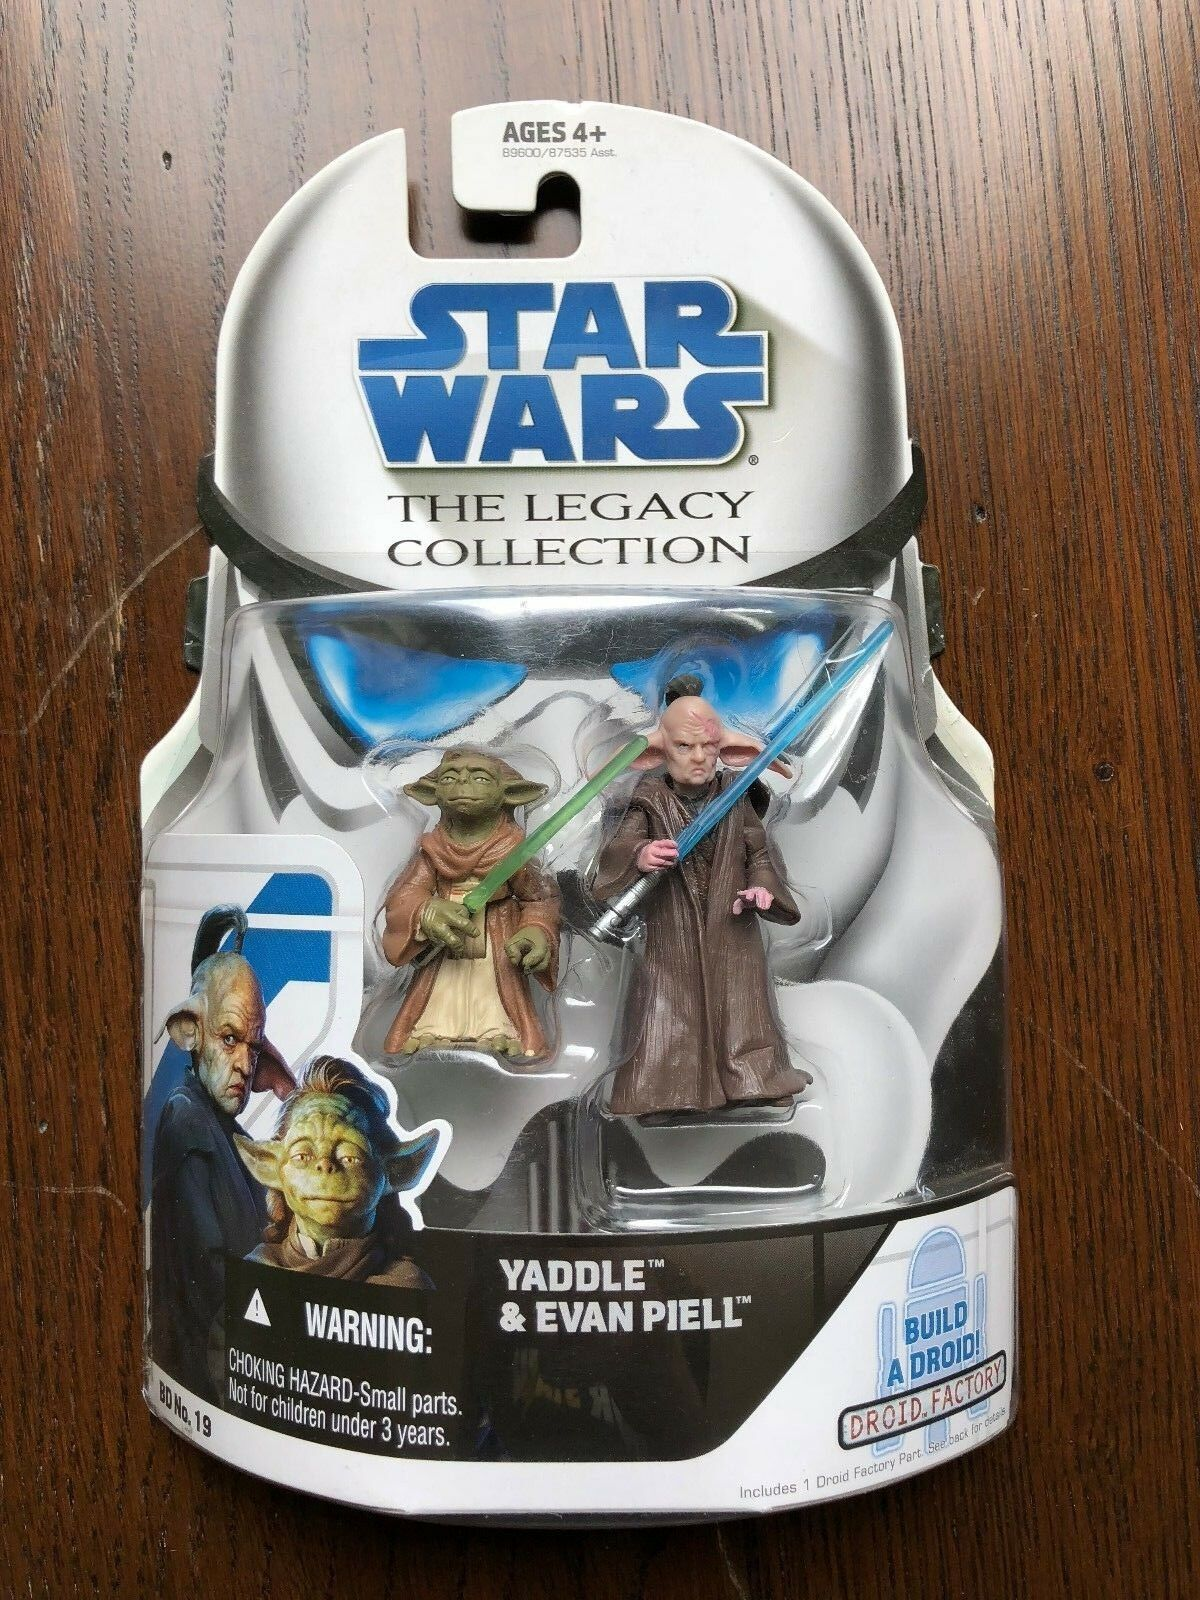 Star Wars Clone Wars Wars Wars Legacy Collection BD No. 19 - YADDLE & EVAN PIELL d8b289